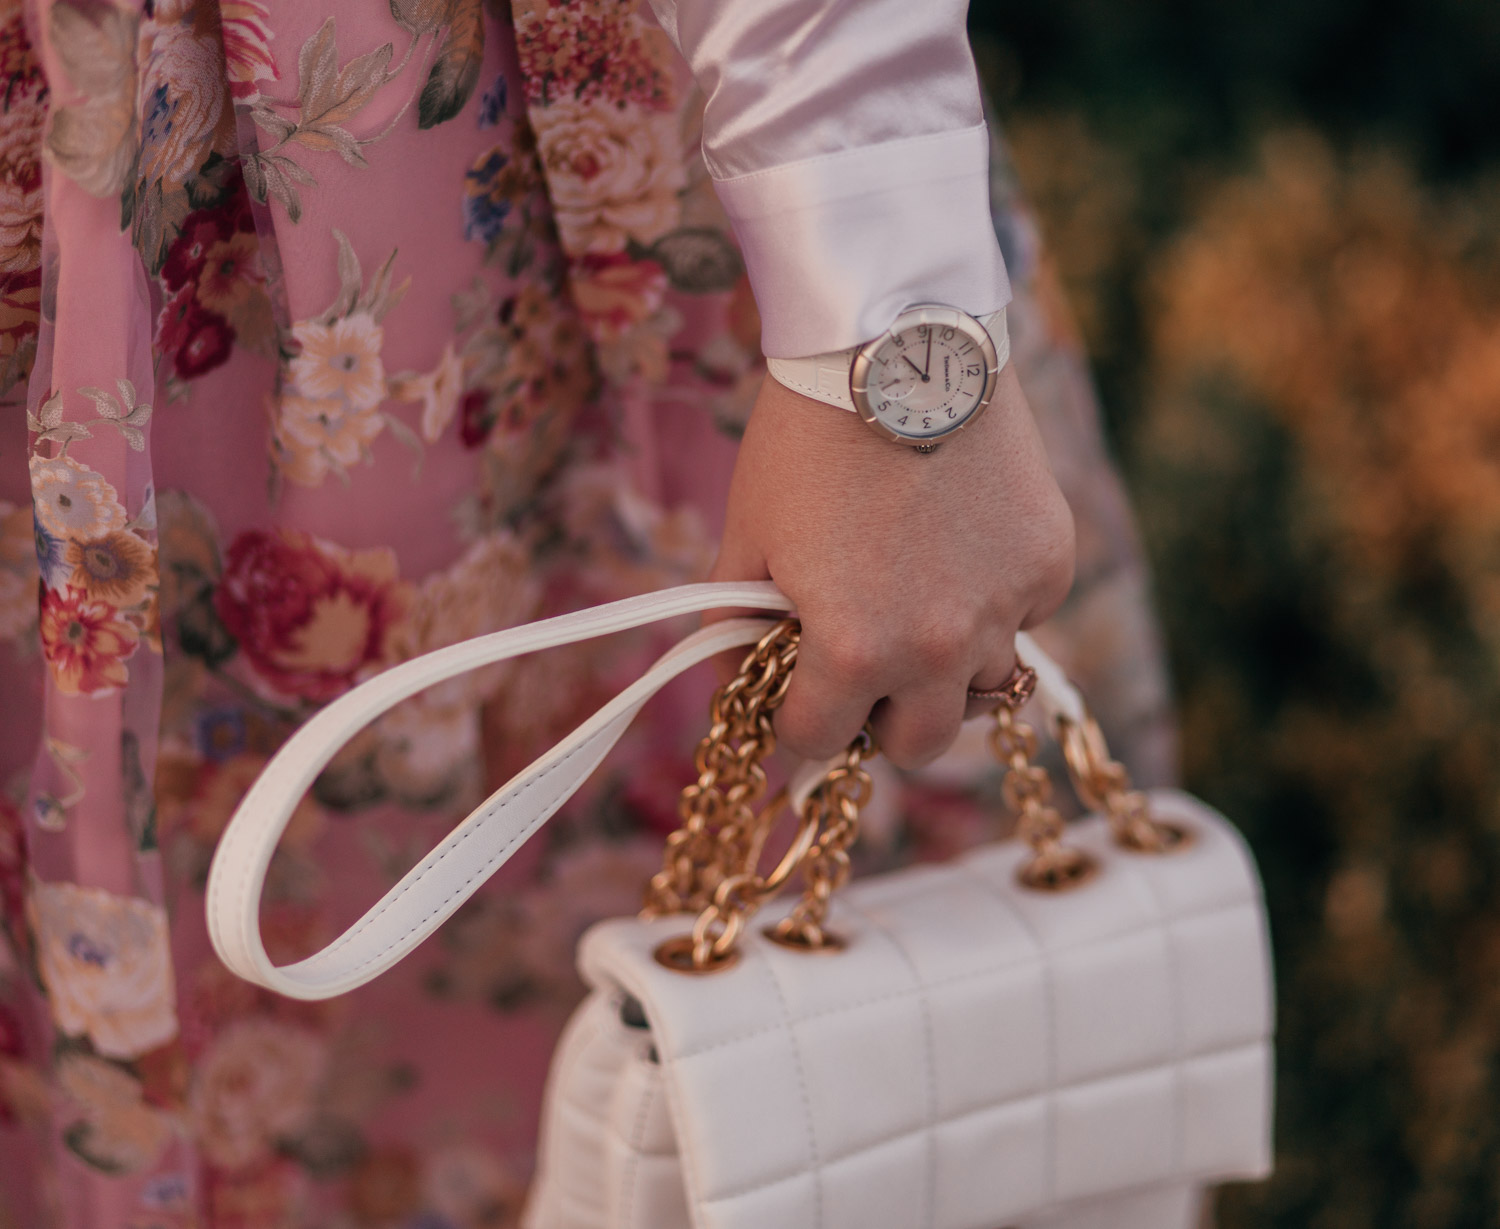 Feminine fashion blogger Elizabeth Hugen of Lizzie in Lace shares How to Style a Classically Feminine Outfit including a Thumm watch and House of Want handbag